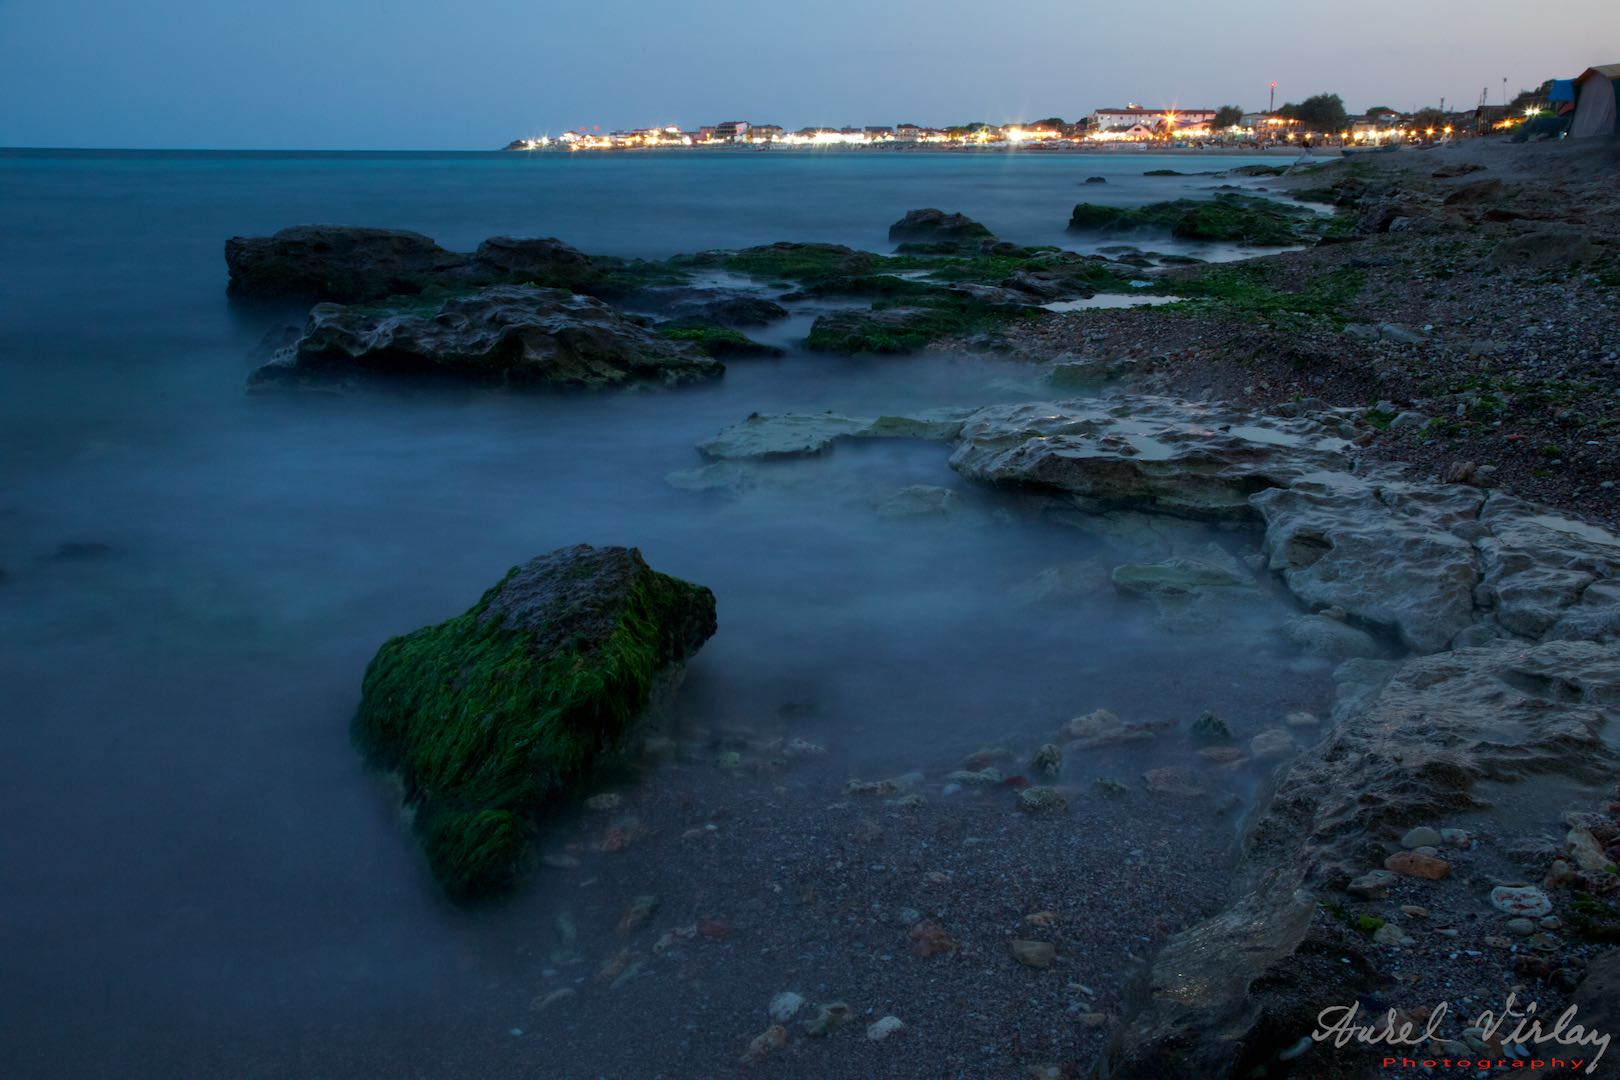 Blue hour over Vama Veche and Black Sea.